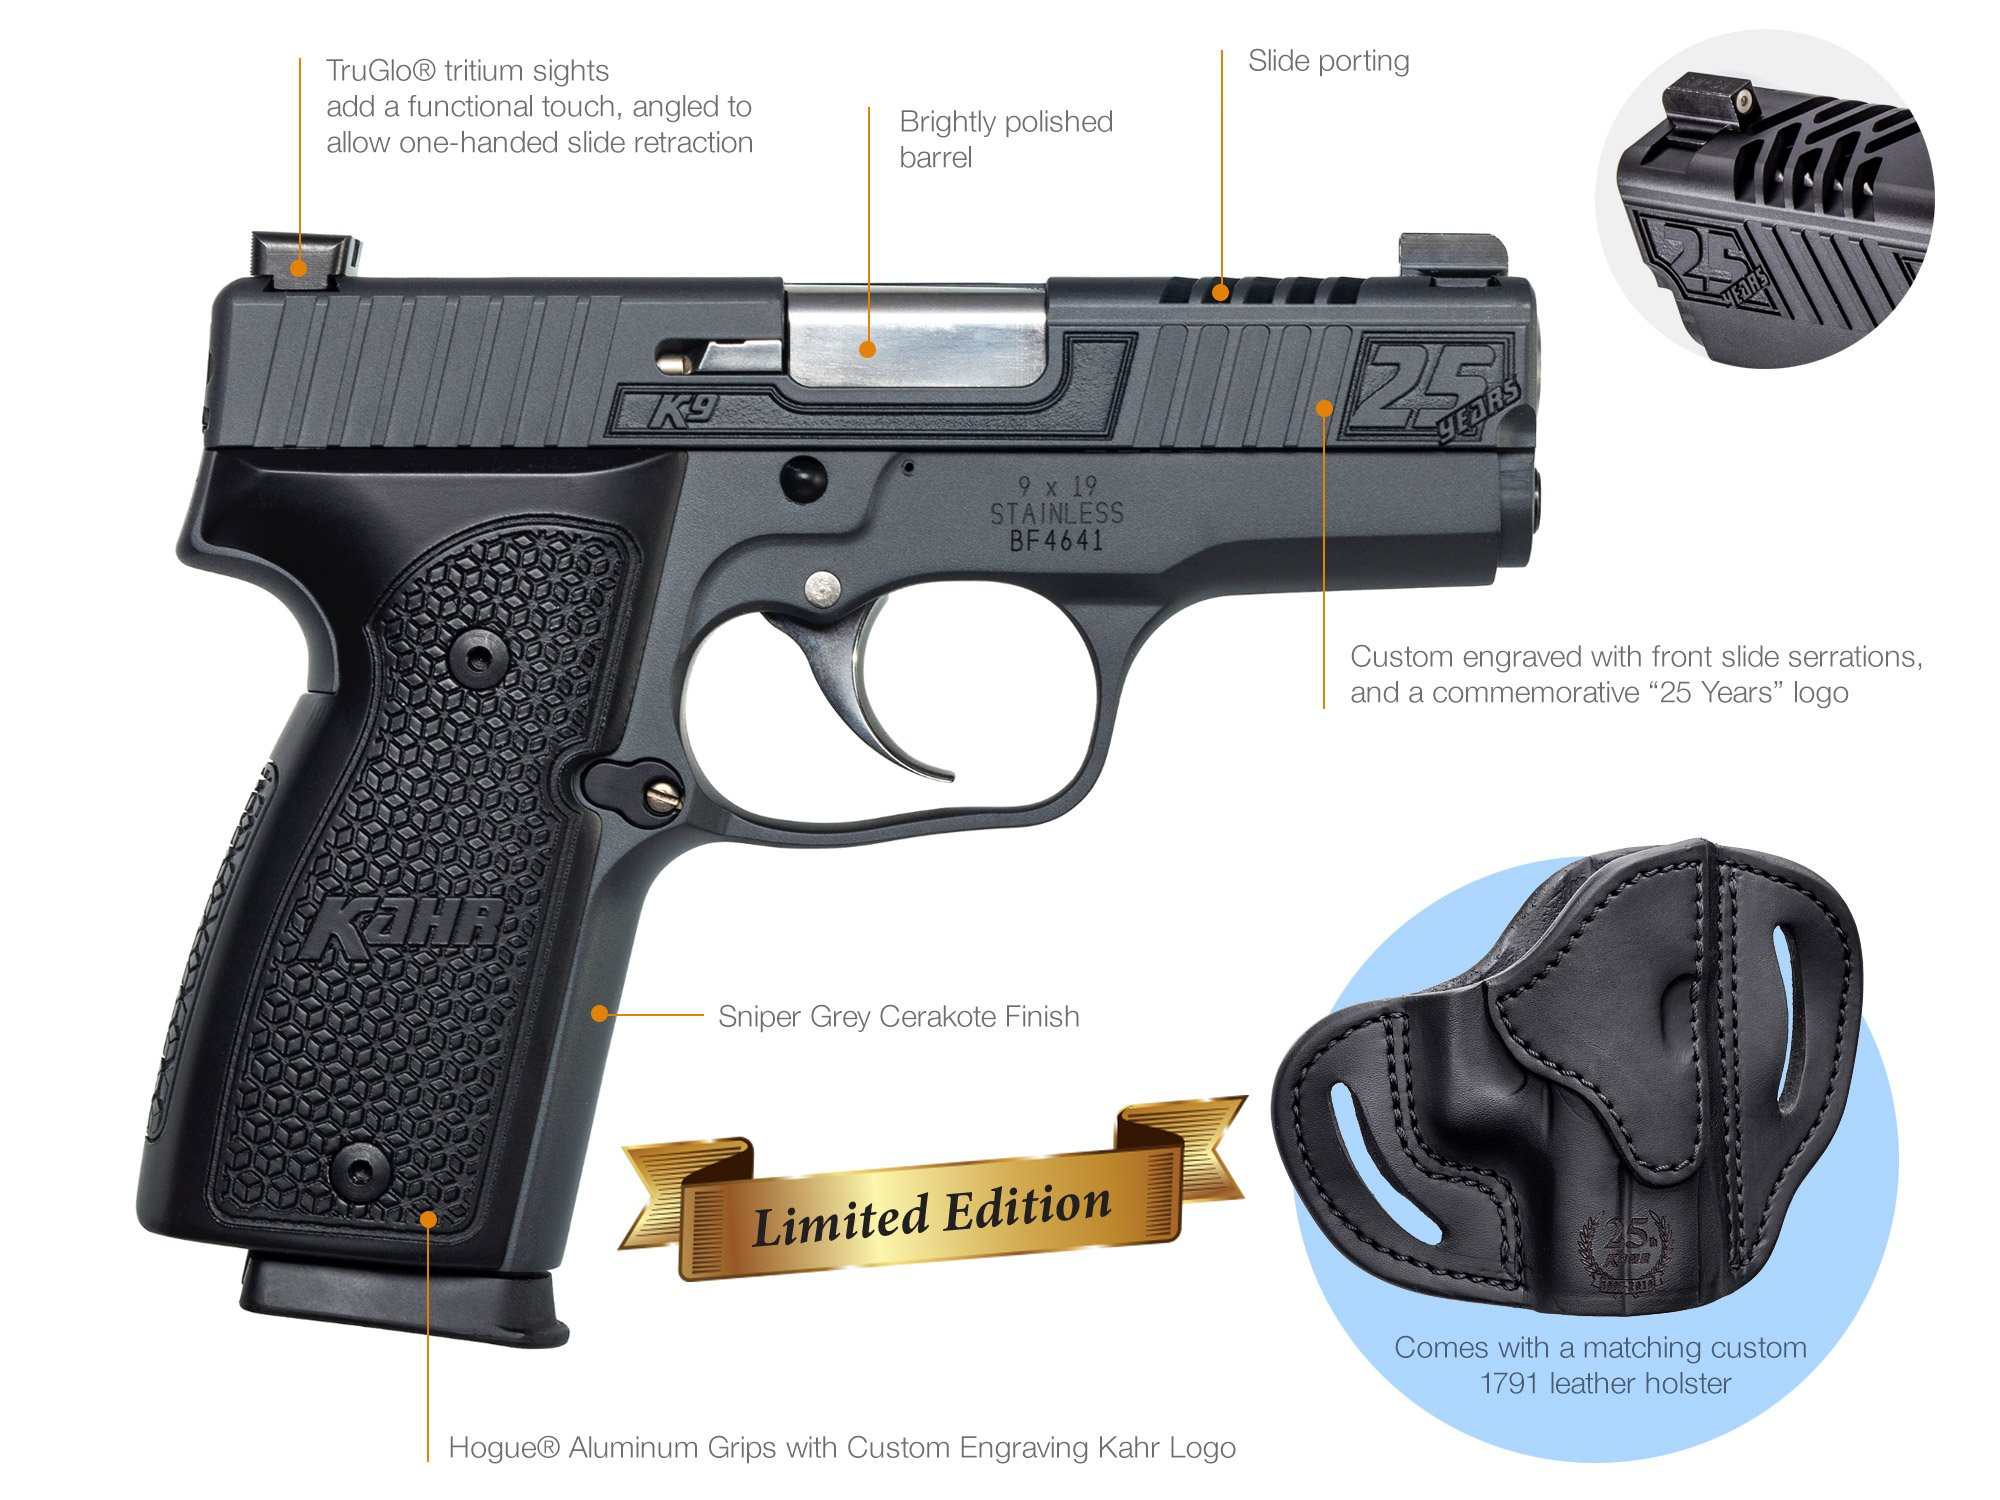 25th Anniversary K9 - Kahr Arms - A leader in technology and